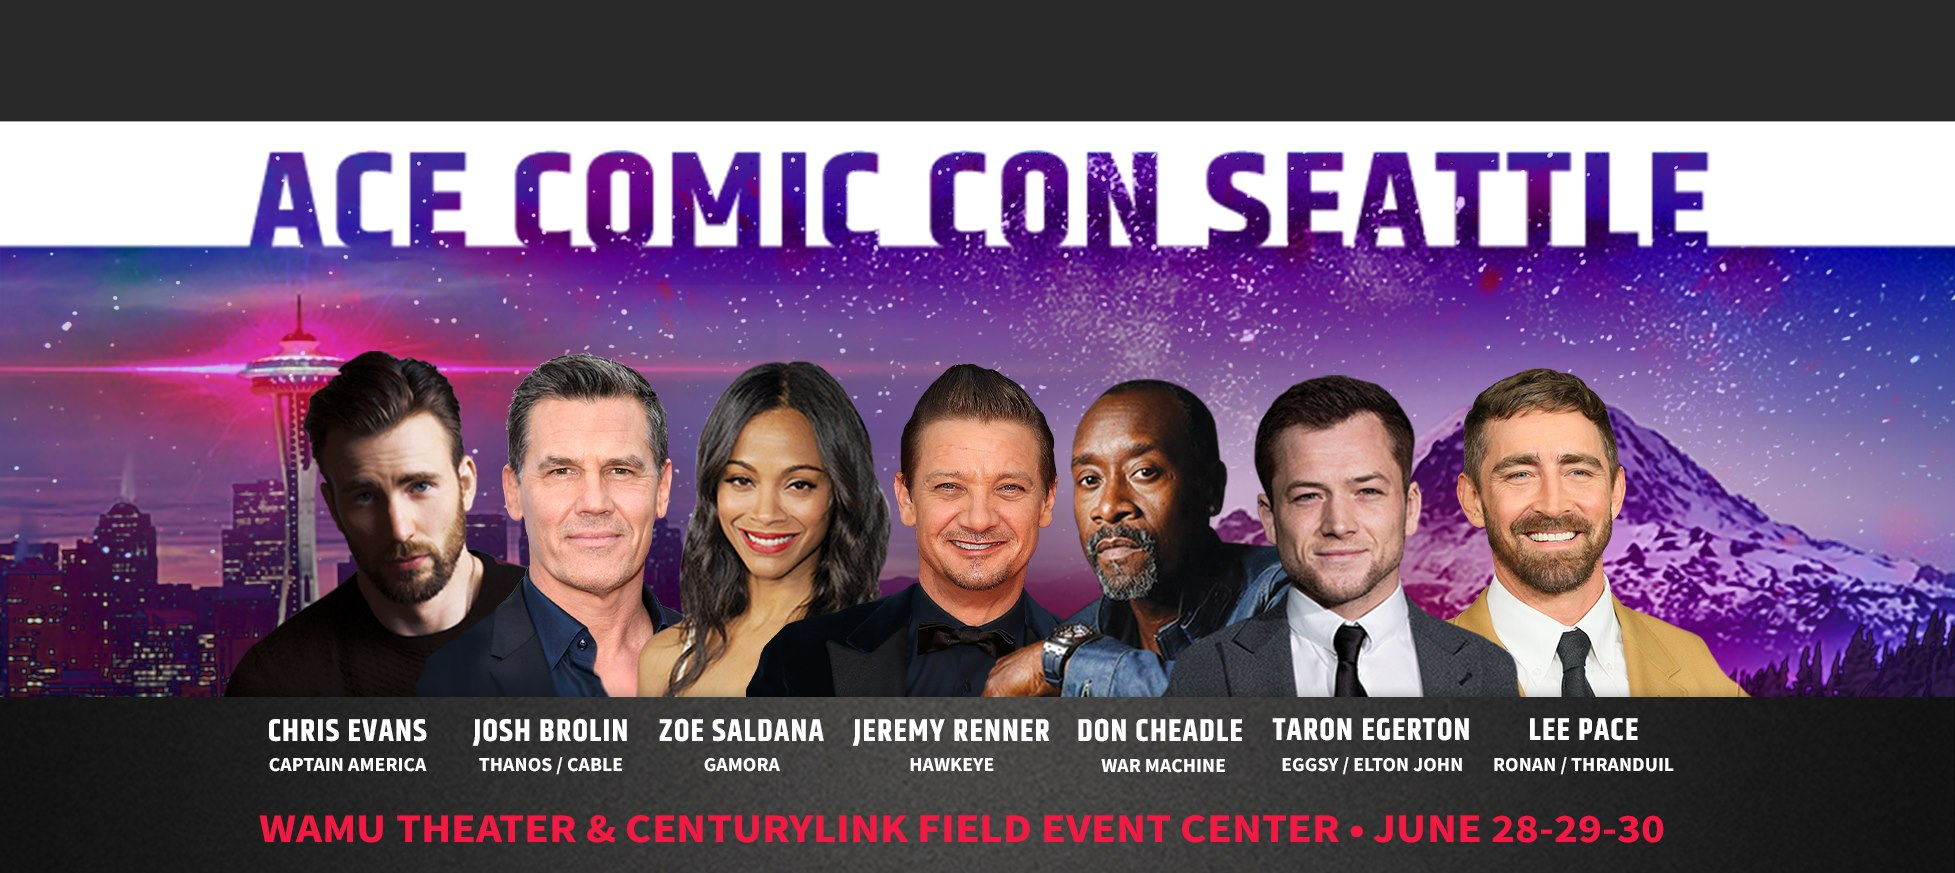 Focus comic to attend Ace comic con Seattle in June